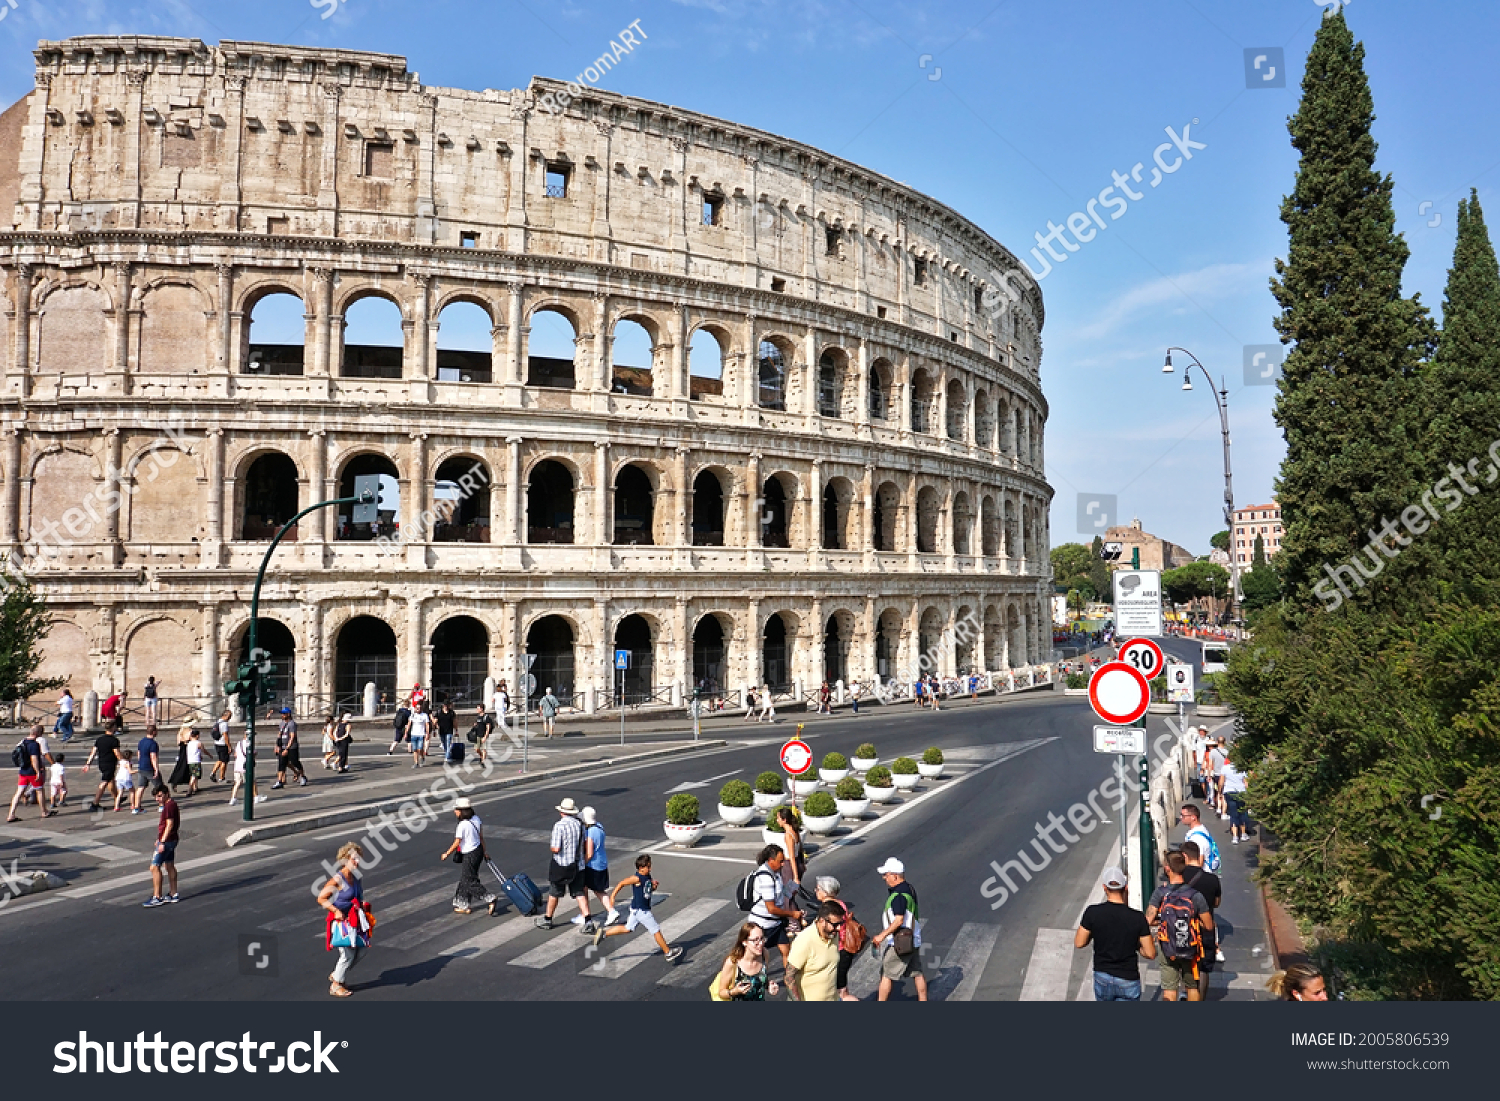 Colosseum, Rome, Italy view from the street on 01.09.2019. Amphitheater in the Roman Empire used to show gladiator fights and hunting scenes with exotic and ferocious animals.